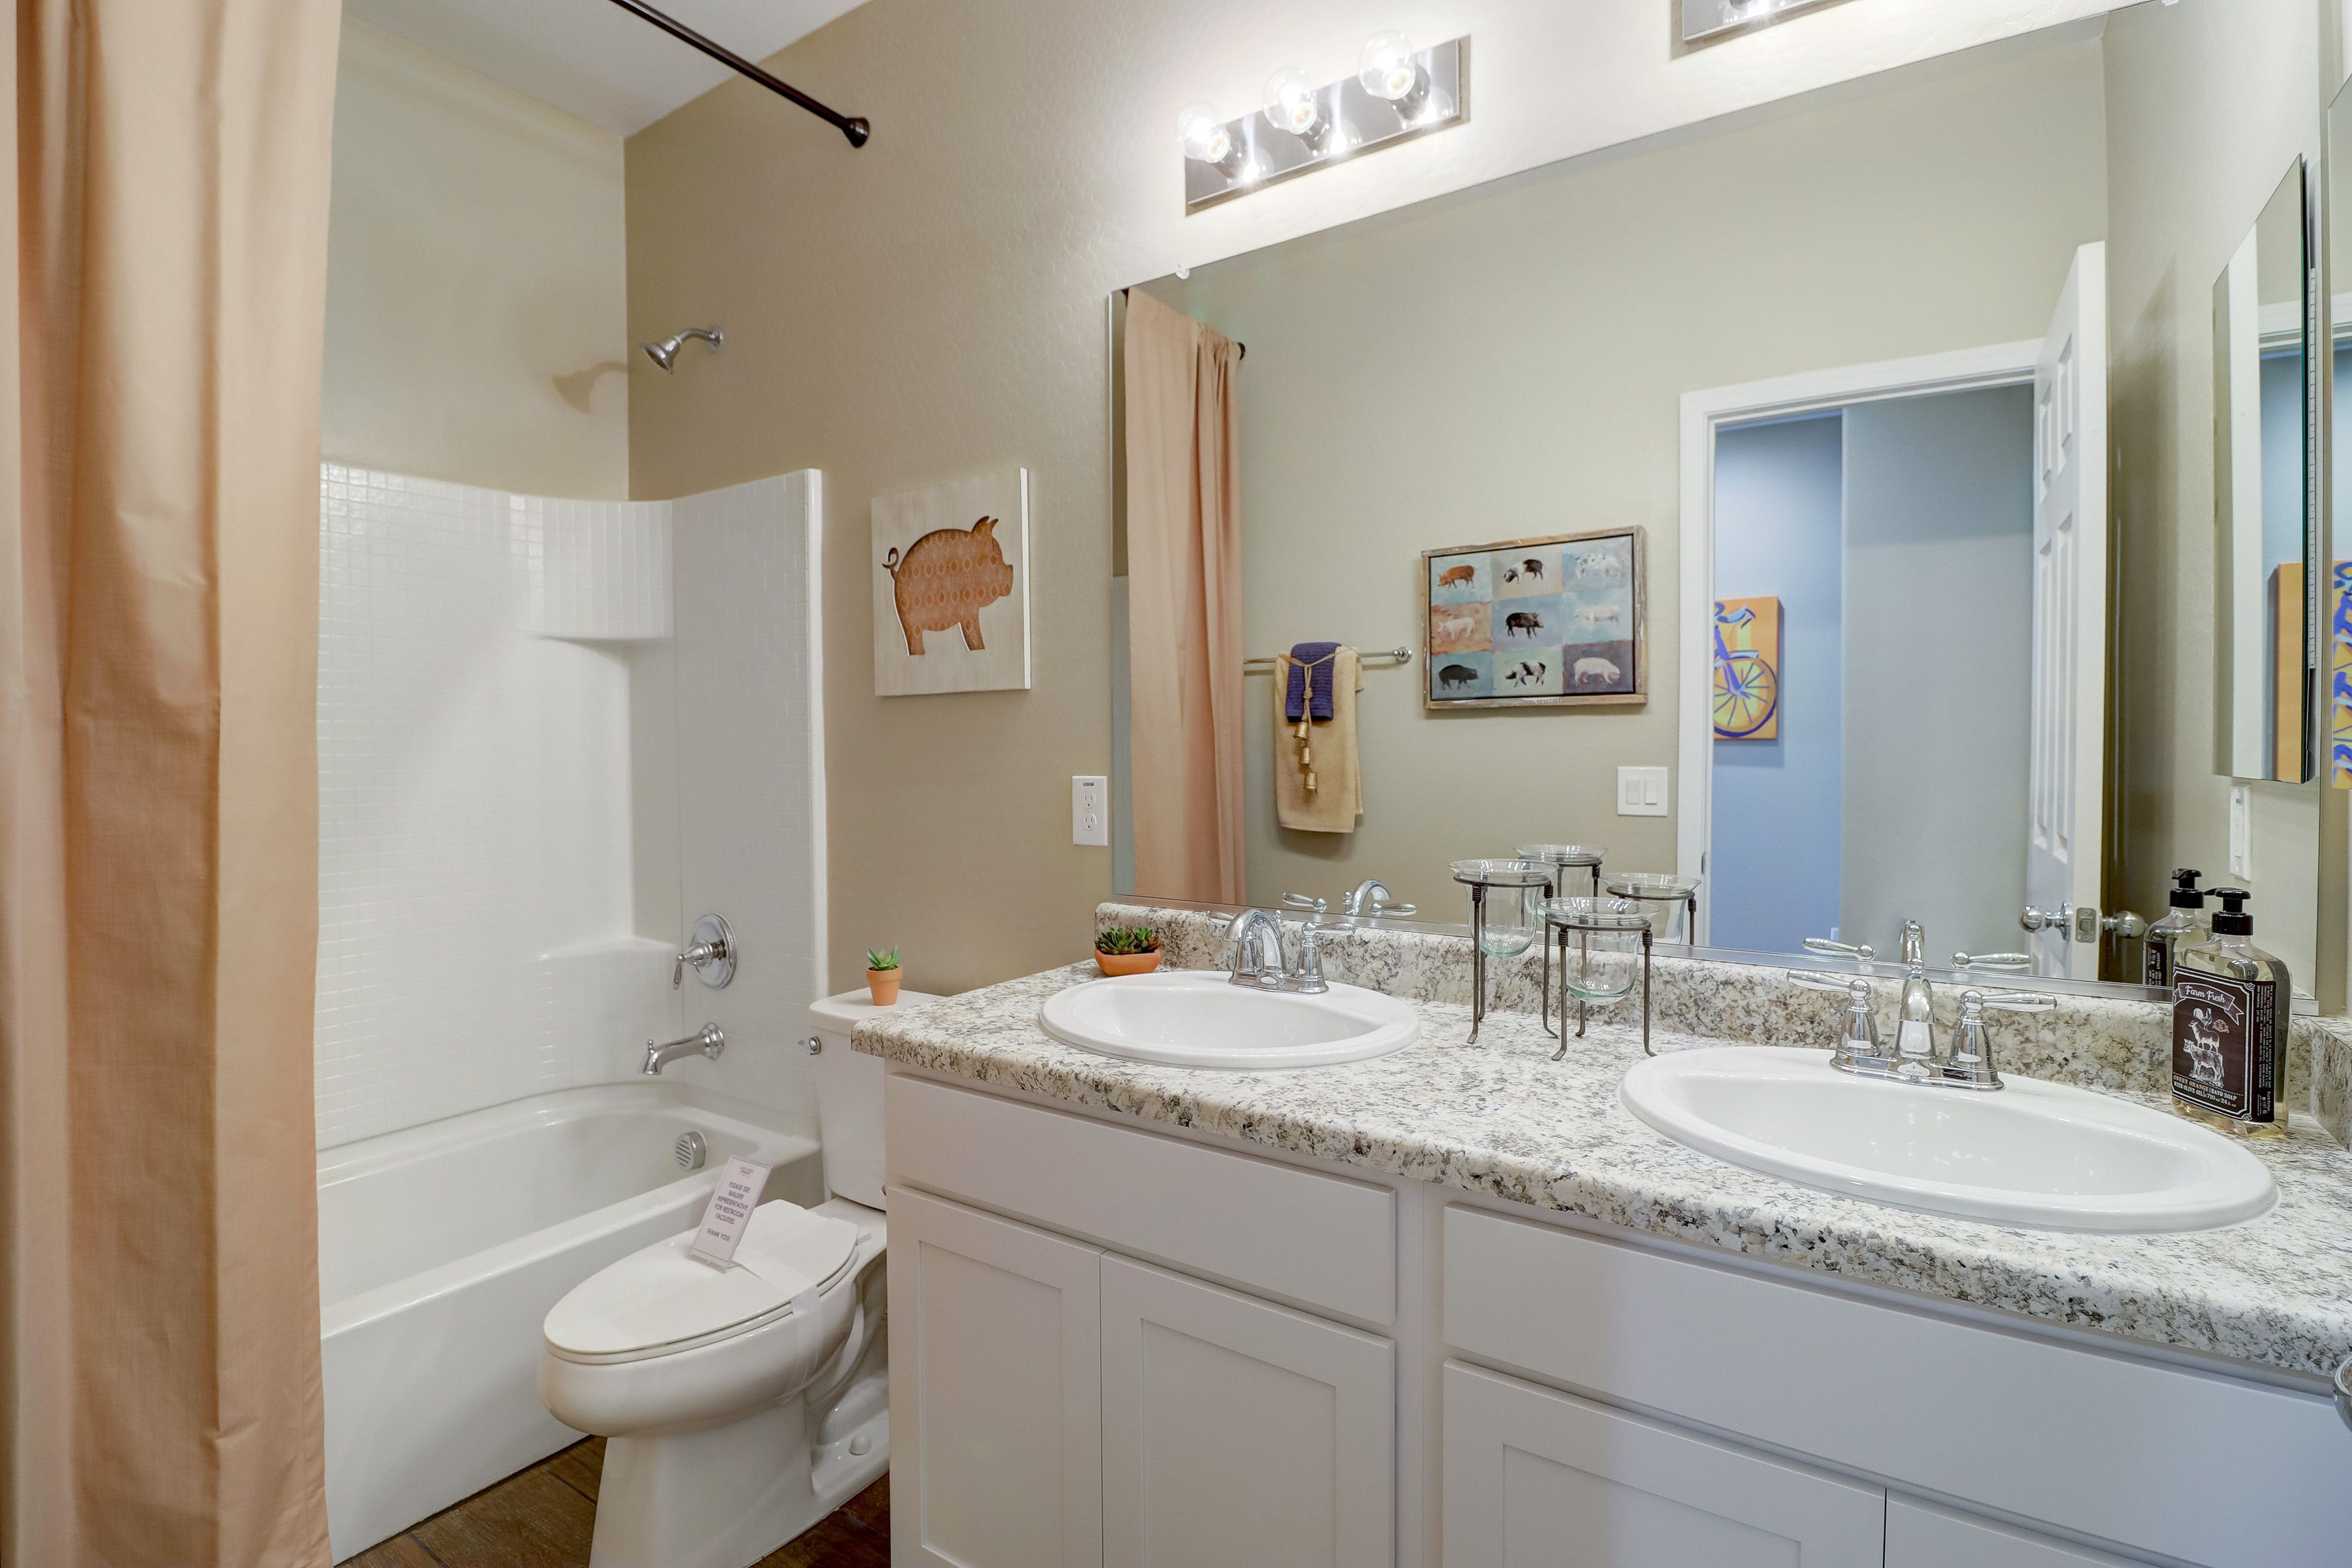 Bathroom featured in the Sabino W/ 8' Double Gate By Landsea Homes in Phoenix-Mesa, AZ